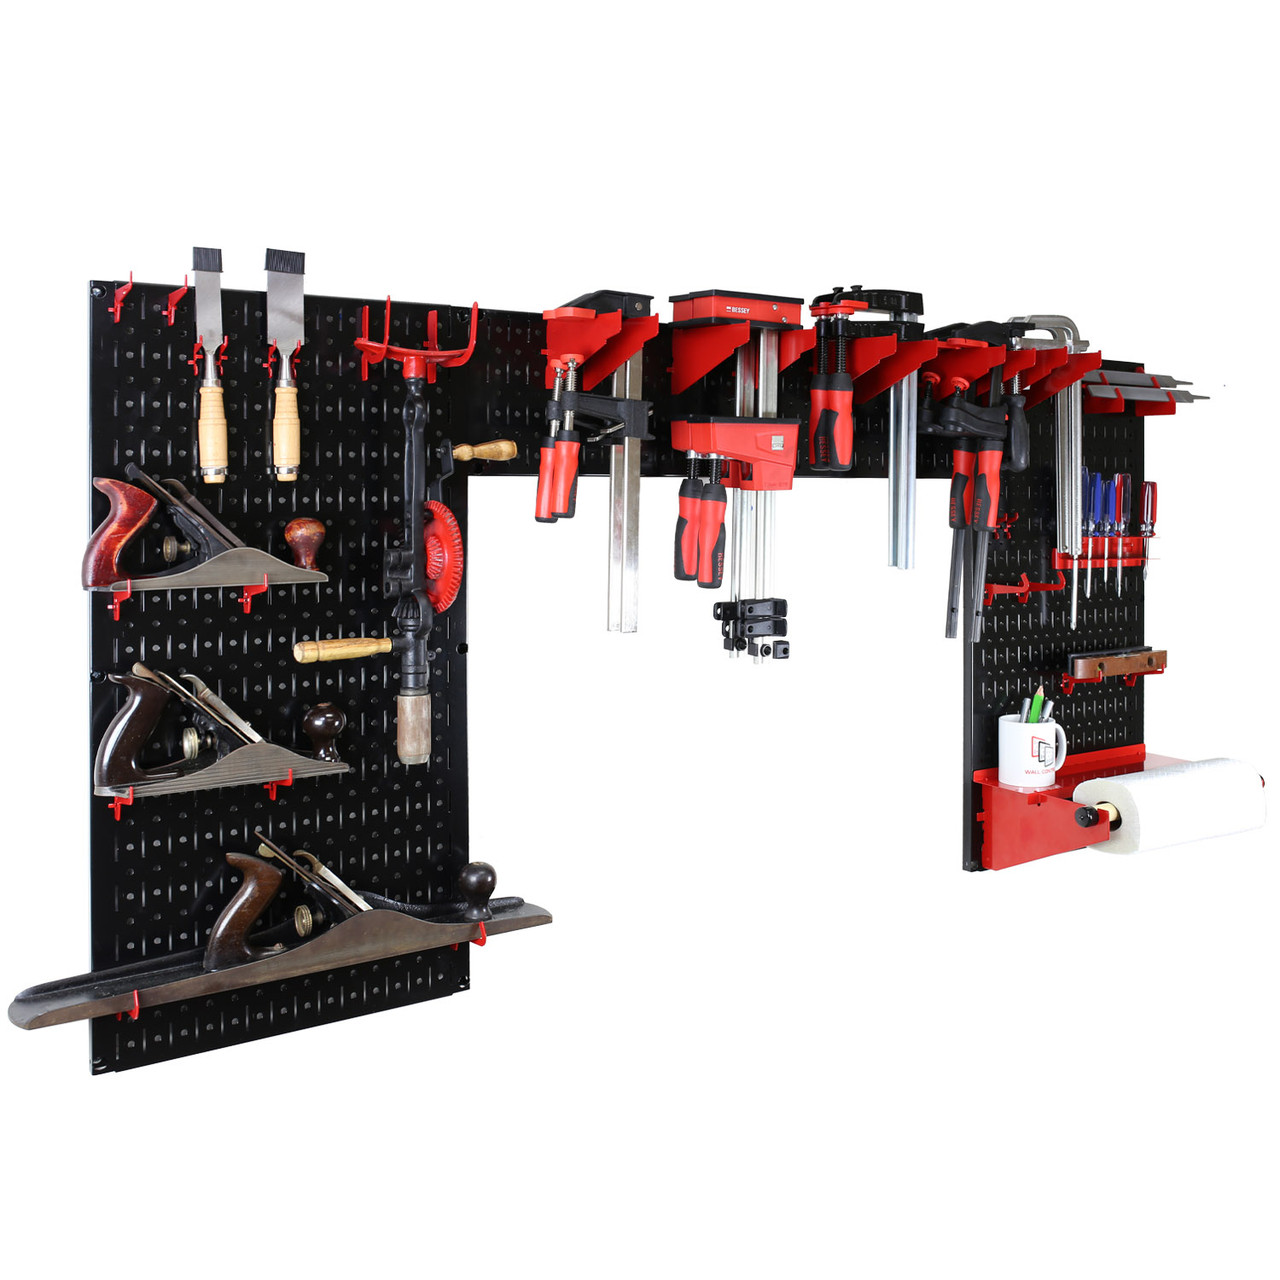 Lazy Guy Diy Maker Woodworking Tool Storage Organizer Set Black Metal Pegboard With Accessories